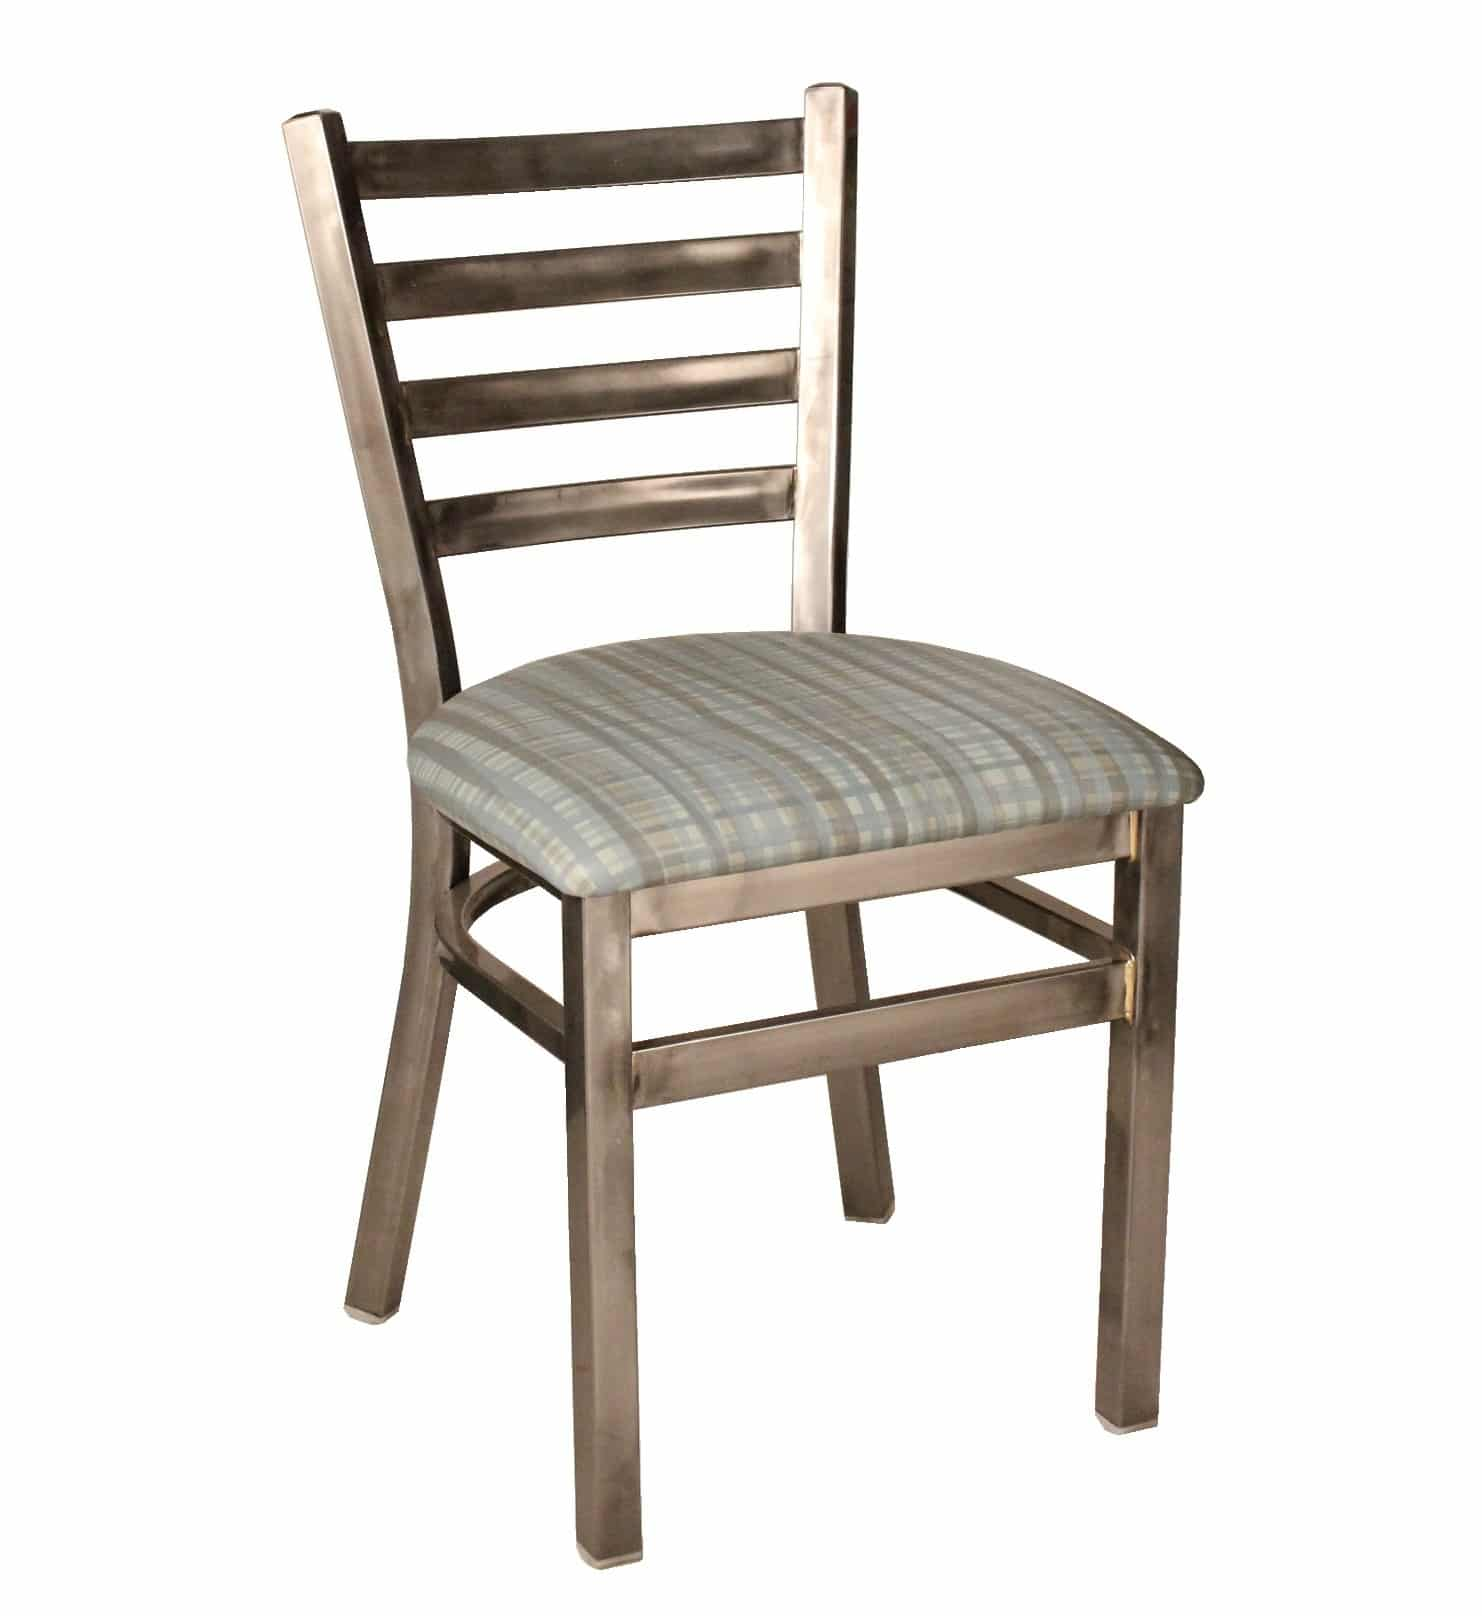 metal restaurant chairs nicaraguan rocking heavy duty ladder back chair model 742 by m